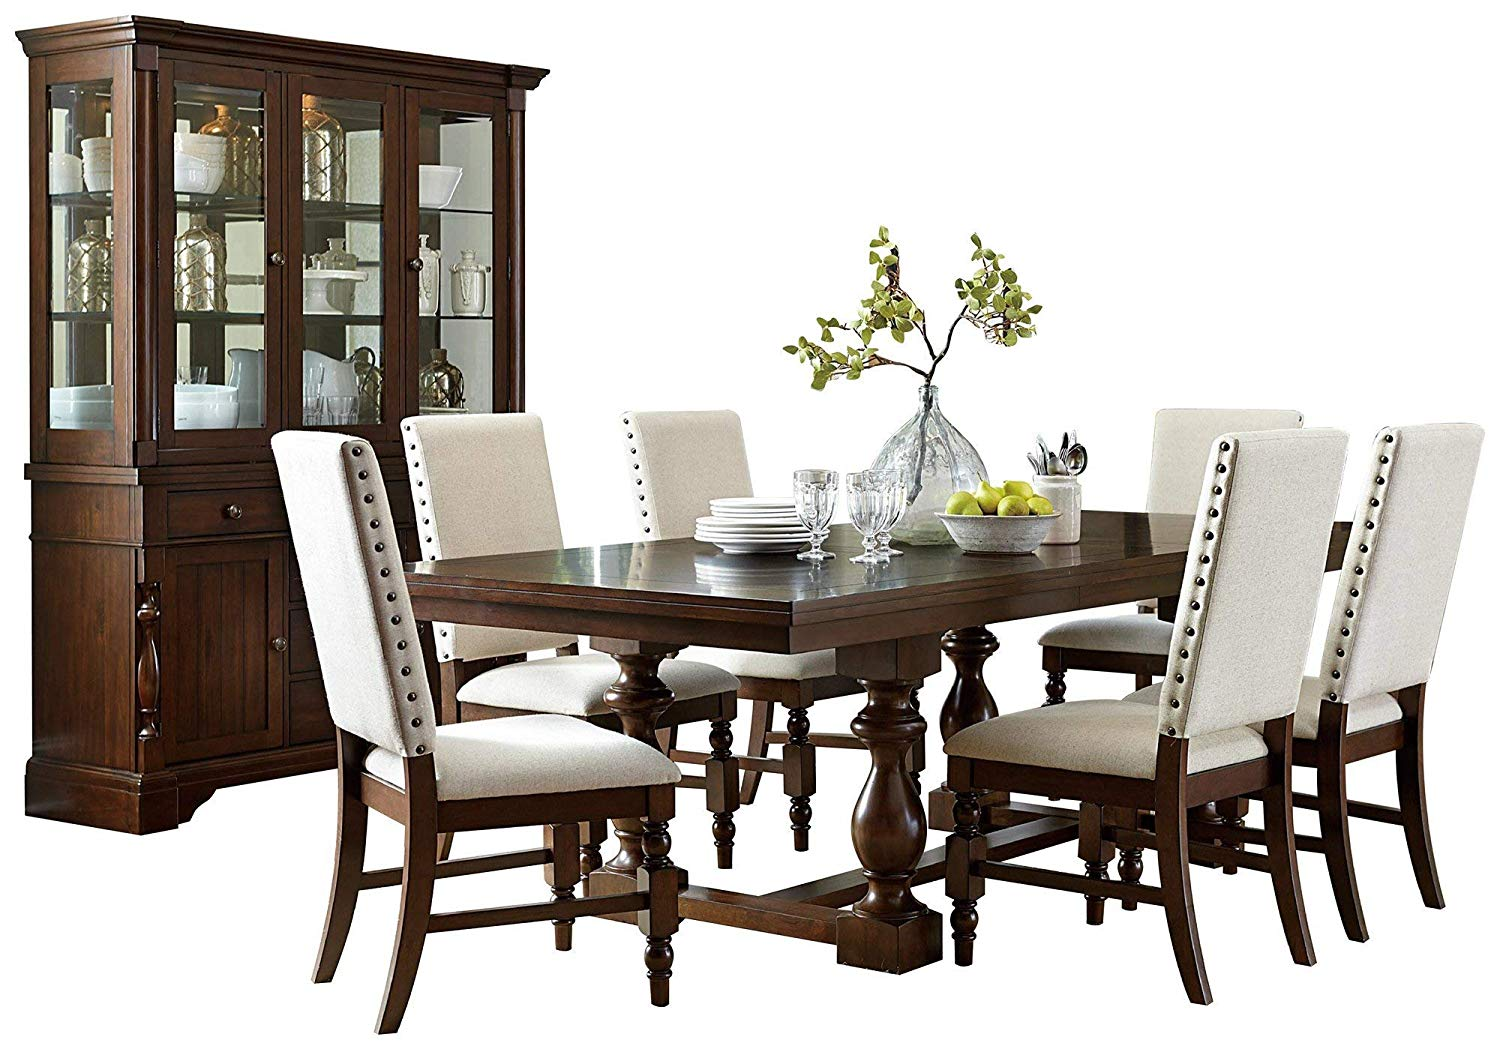 Get Quotations Yancy Rustic Country 8pc Dining Set Table 6 Fabric Chair Buffet Hutch In